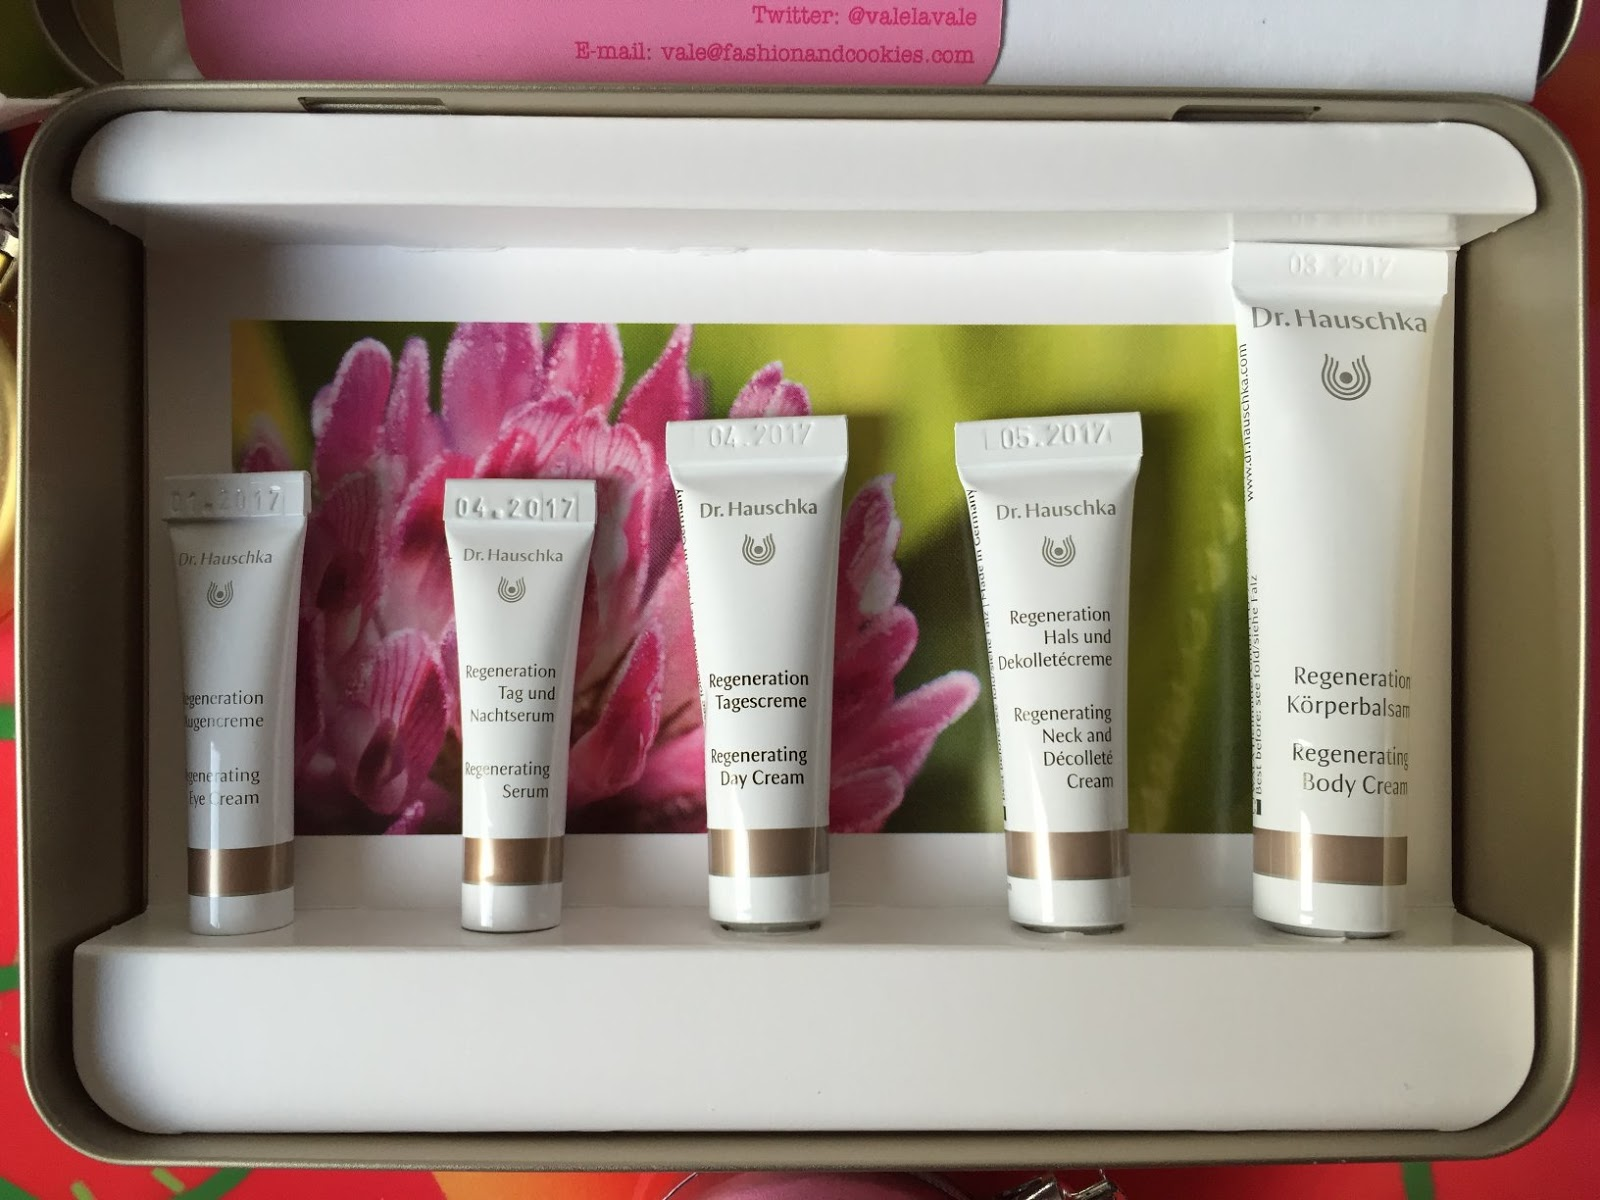 Dr. Hauschka Regenerating Skin Care Kit, best products for mature skin, Coffret Trattamento Rigenerante on Fashion and Cookies beauty blog, beauty blogger from Italy